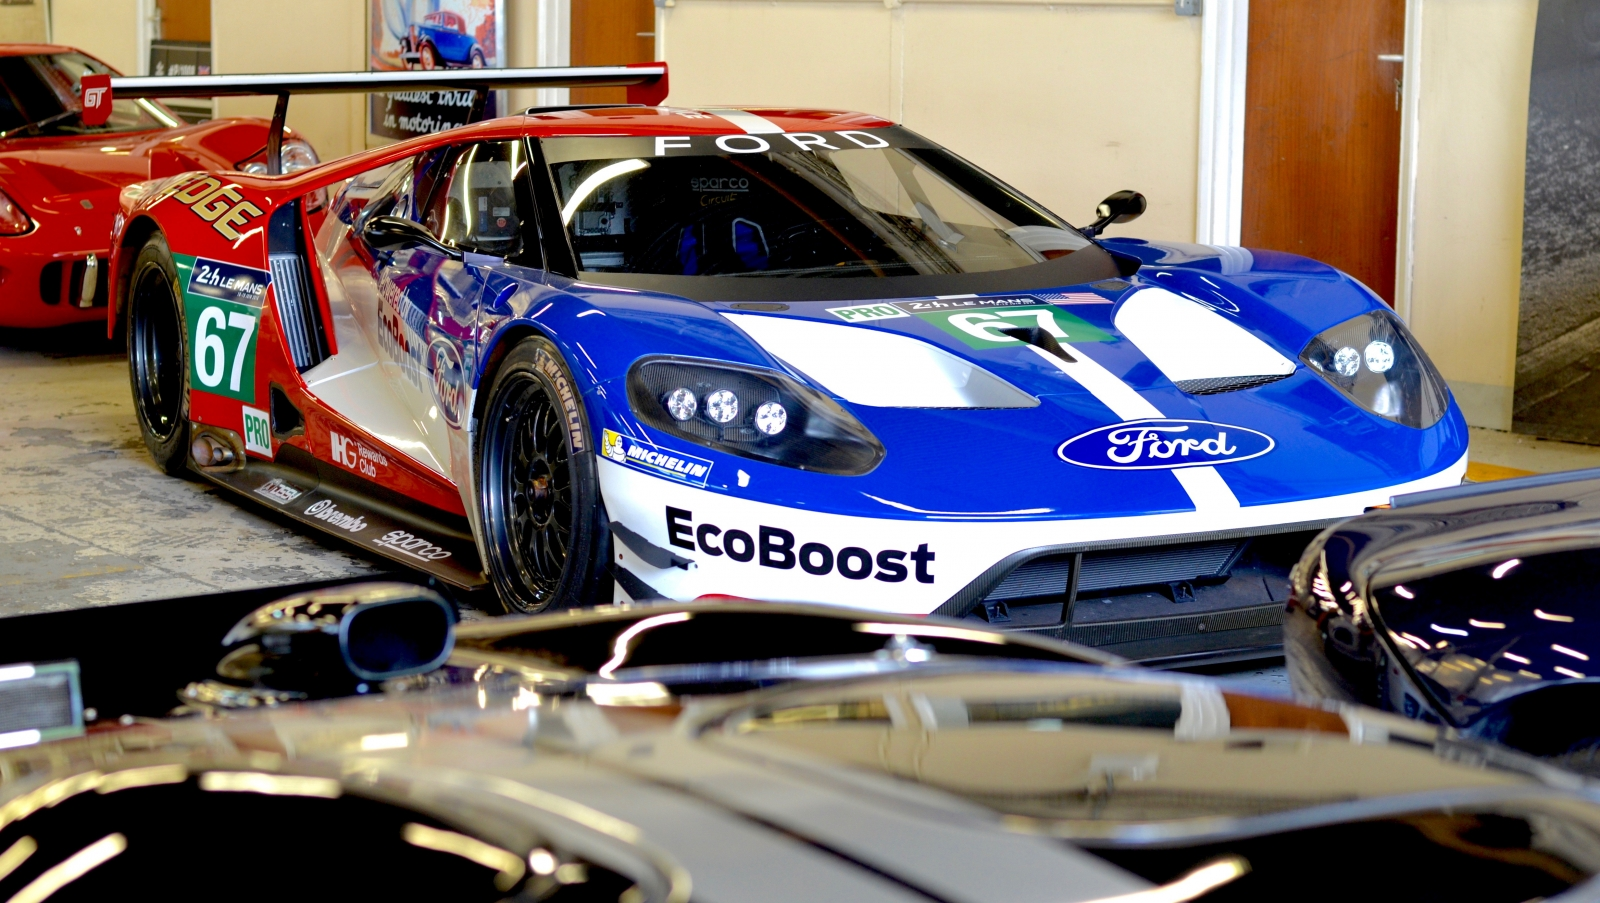 le mans 2016 ford gt photoshoot new racer meets its gt and gt40 predecessors ahead of 24 hour race. Black Bedroom Furniture Sets. Home Design Ideas